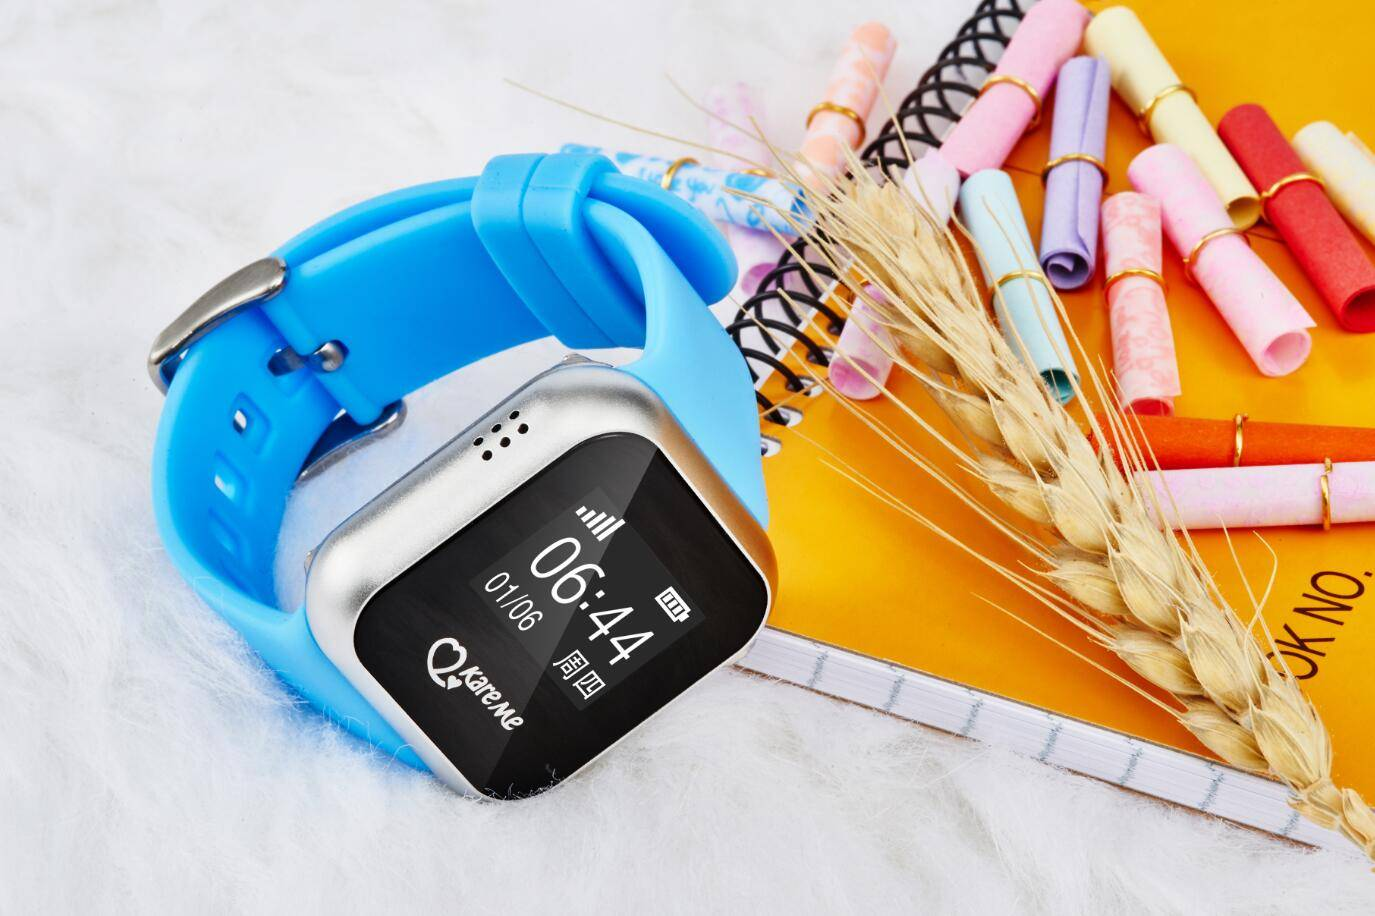 2016 hot selling kids GPS smart phone watch with GPS+AGPS+LBS and two way communication wristband st